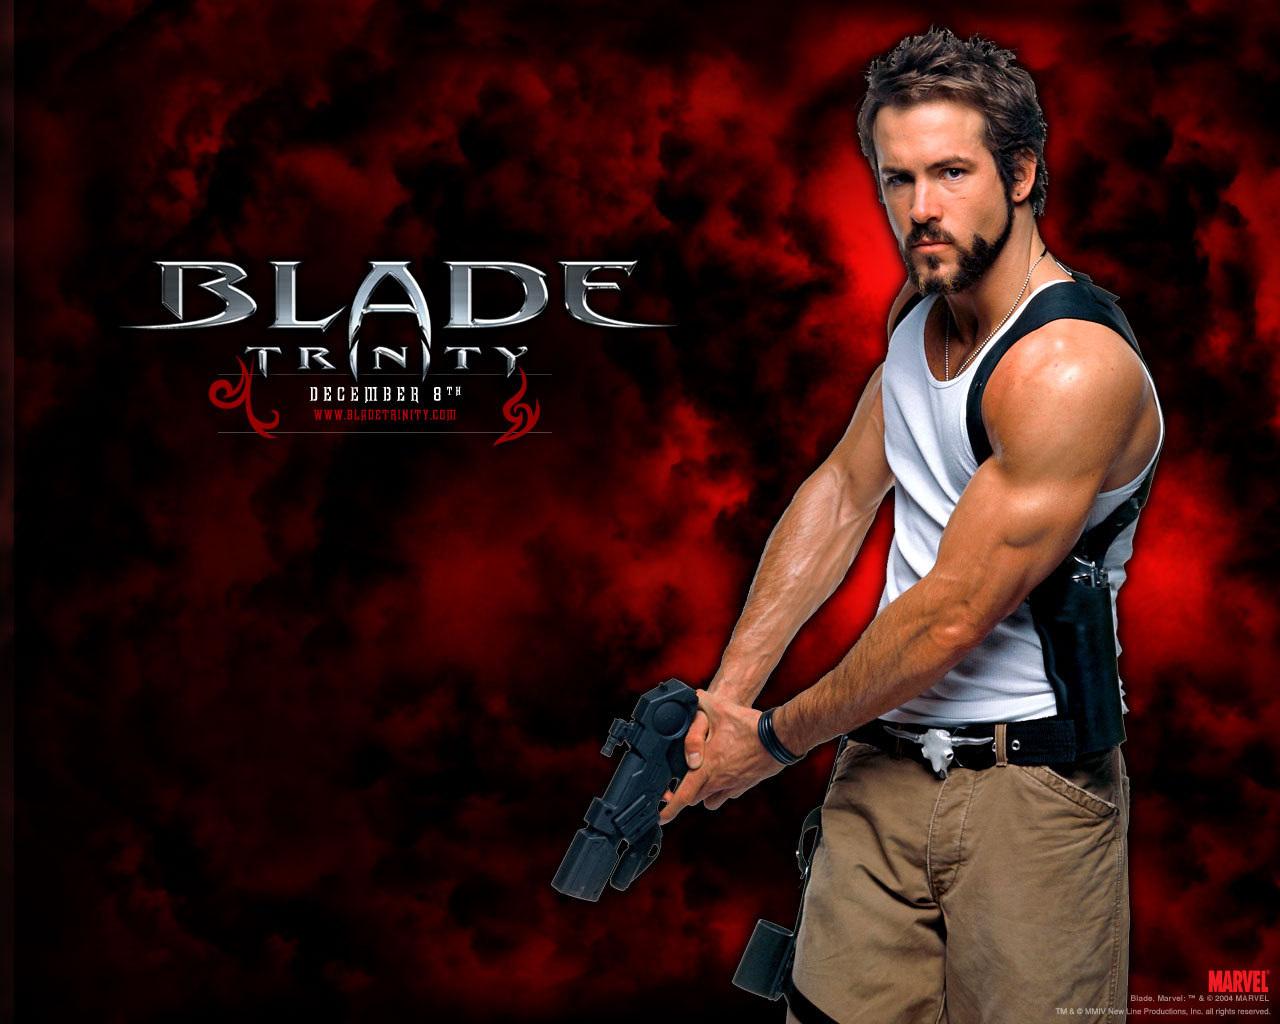 Blade images Blade Trinity wallpaper photos 930543 1280x1024